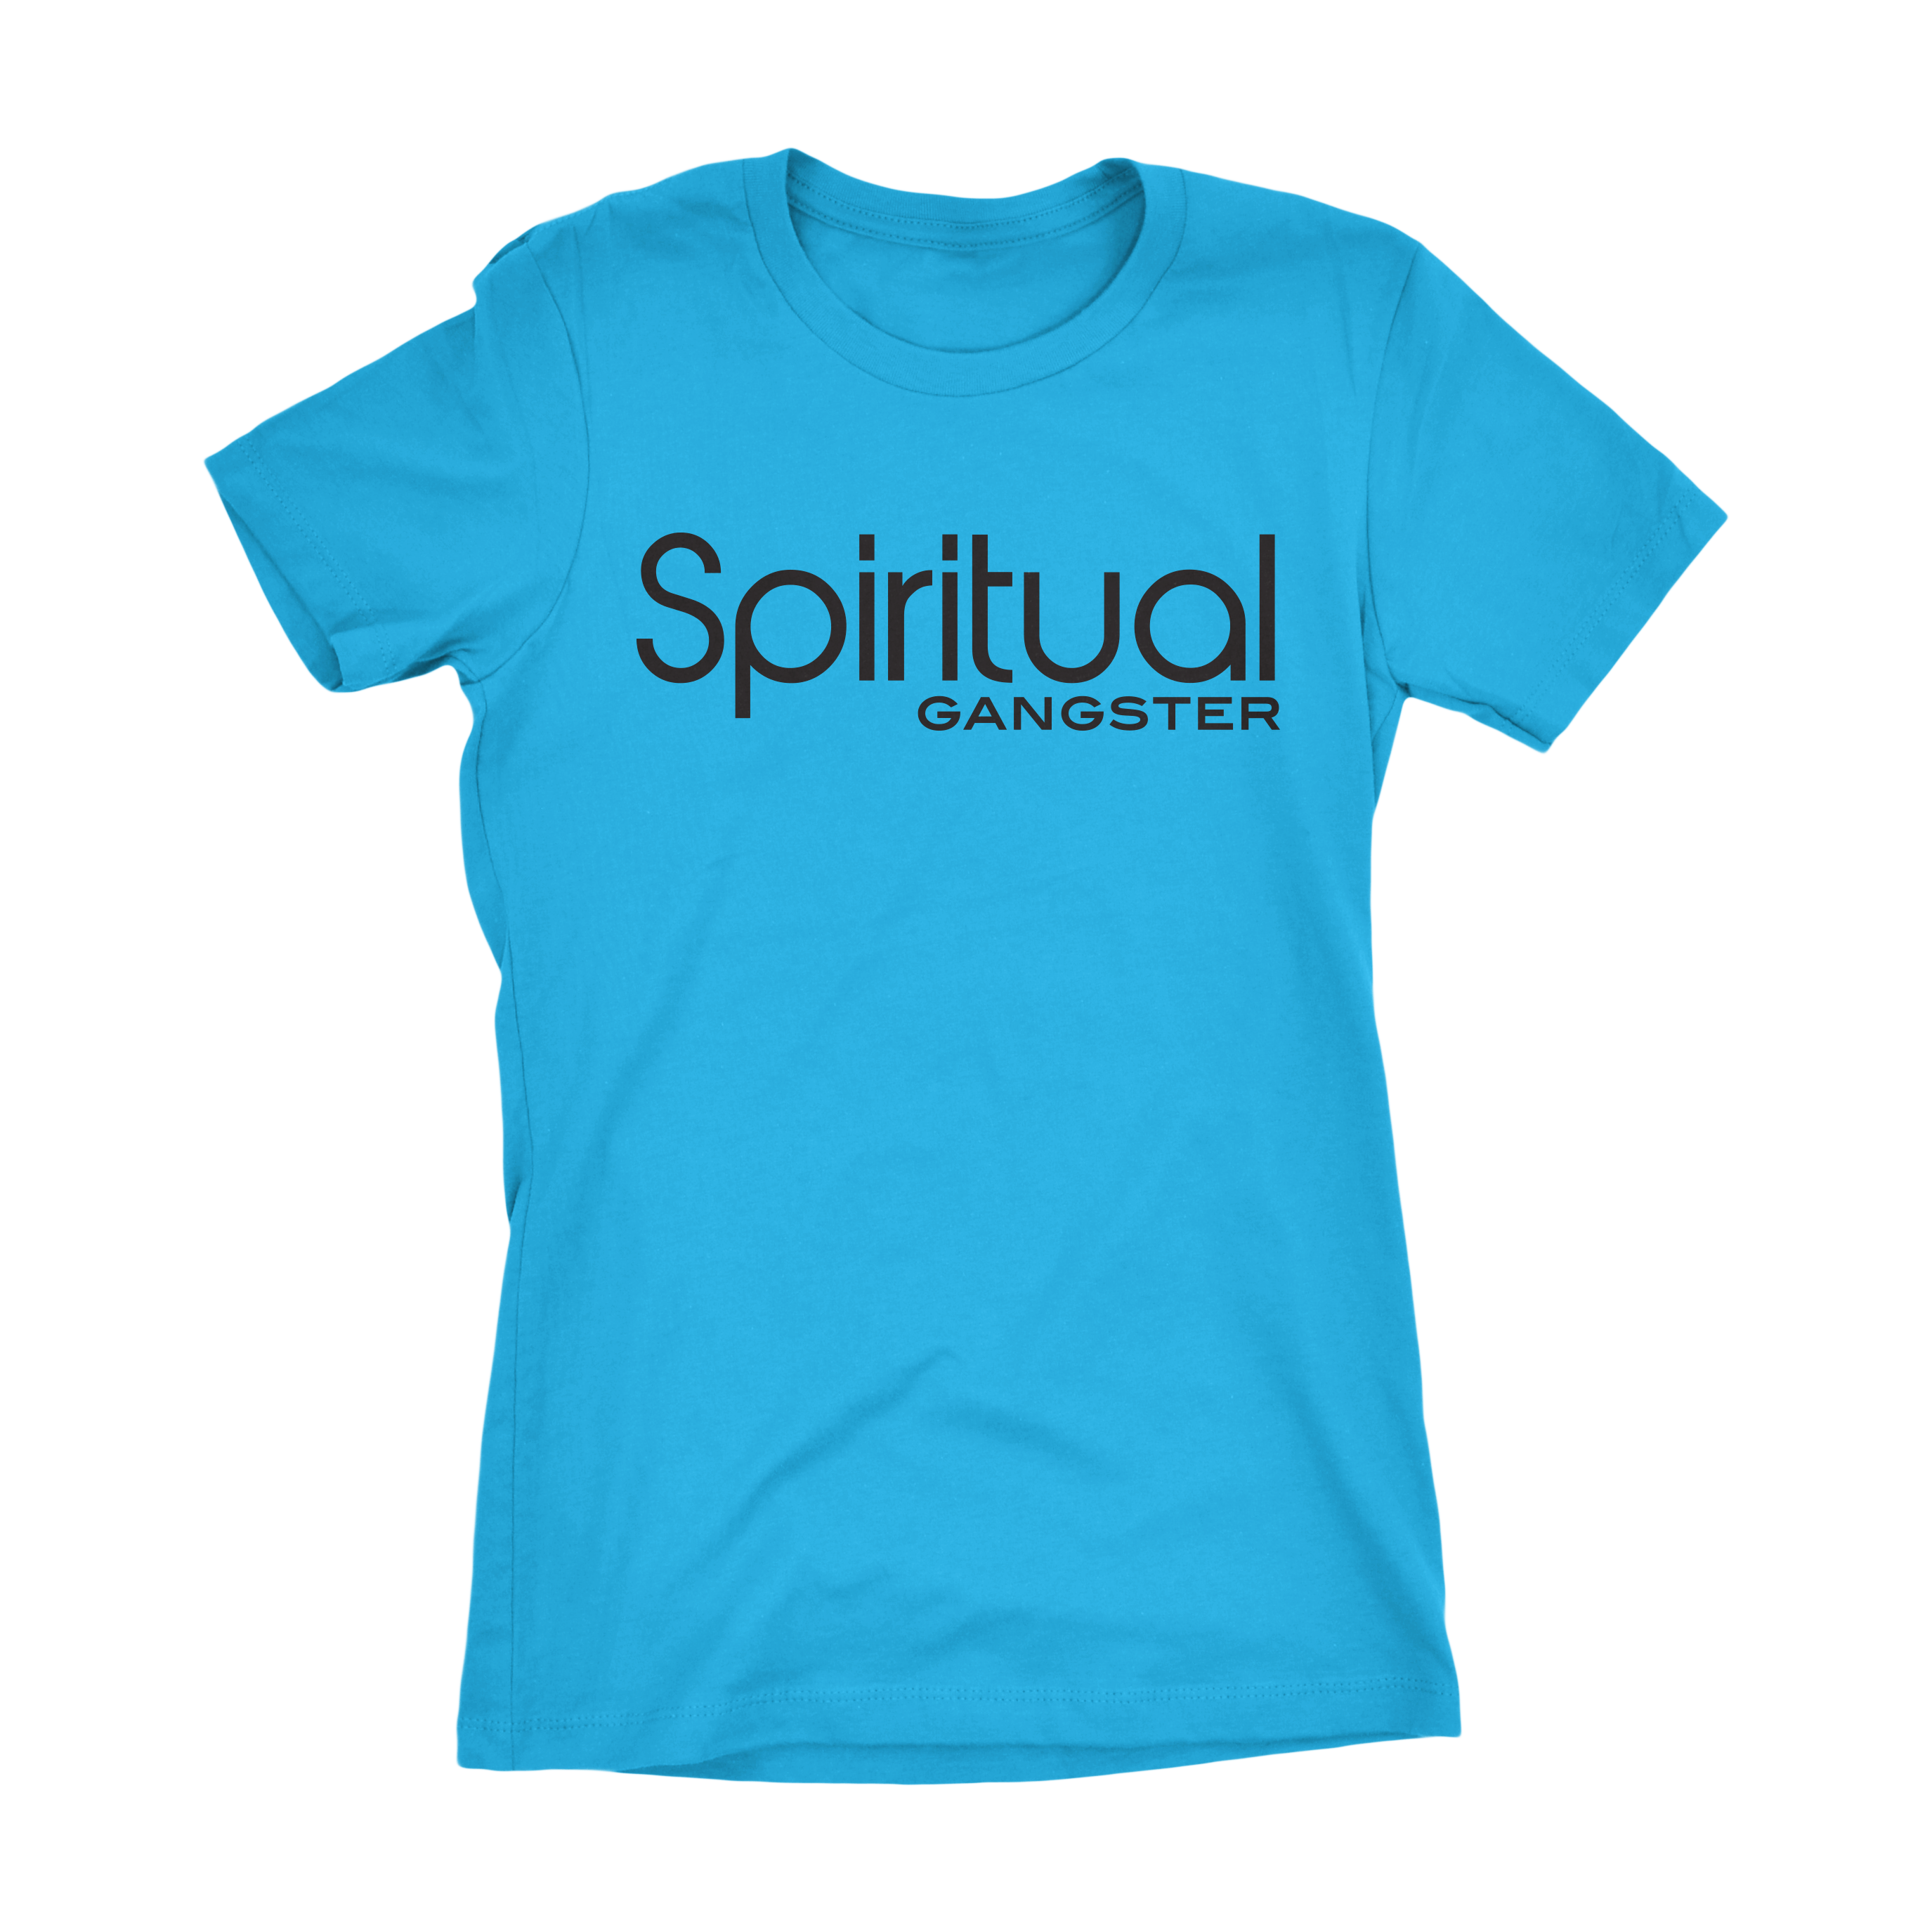 Spiritual T-shirt, GOD fearing shirt. Quick Motto Shirts